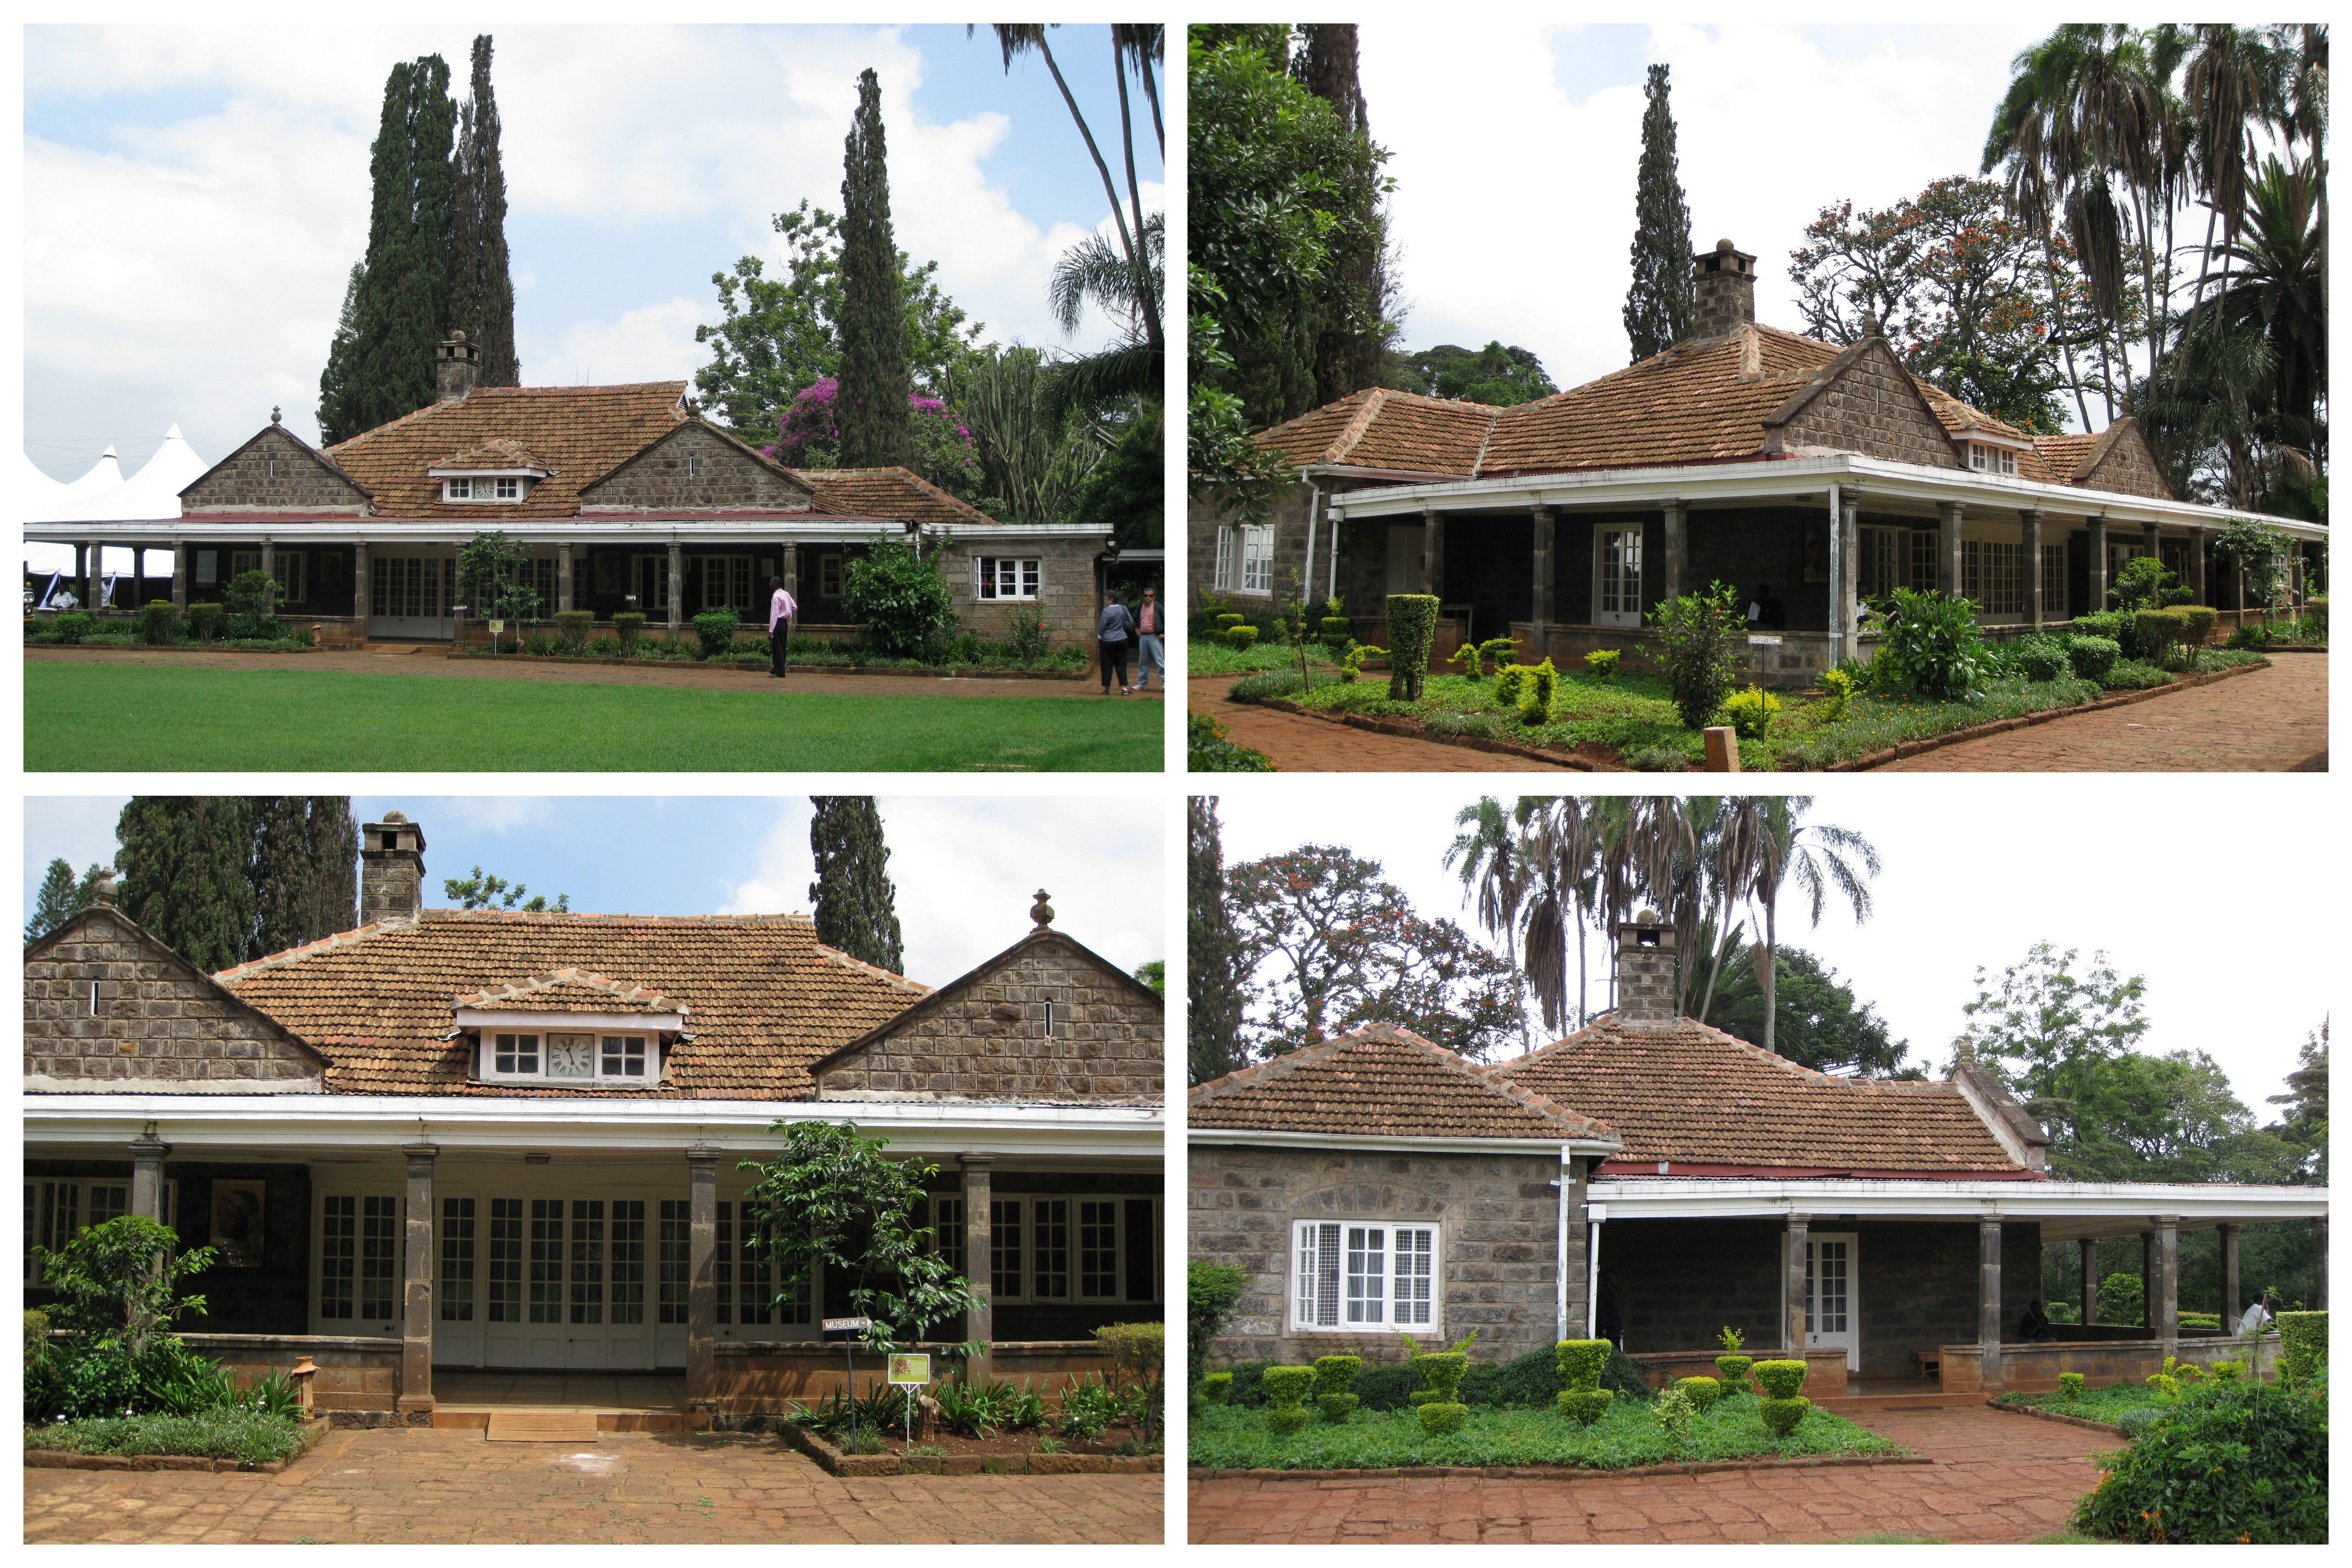 Karen Blixen House, Nairobi | House, House styles, Home on townhouse renderings, townhouse deck plans, townhouse construction, townhouse elevations, 2 car garage duplex plans, townhouse plans for narrow lots, townhouse design, townhouse drawings, townhouse layout, townhouse rentals, townhouse luxury interior, townhouse community, townhouse master plan, townhouse blueprints, garage apartment plans, townhouse home plans with basement,